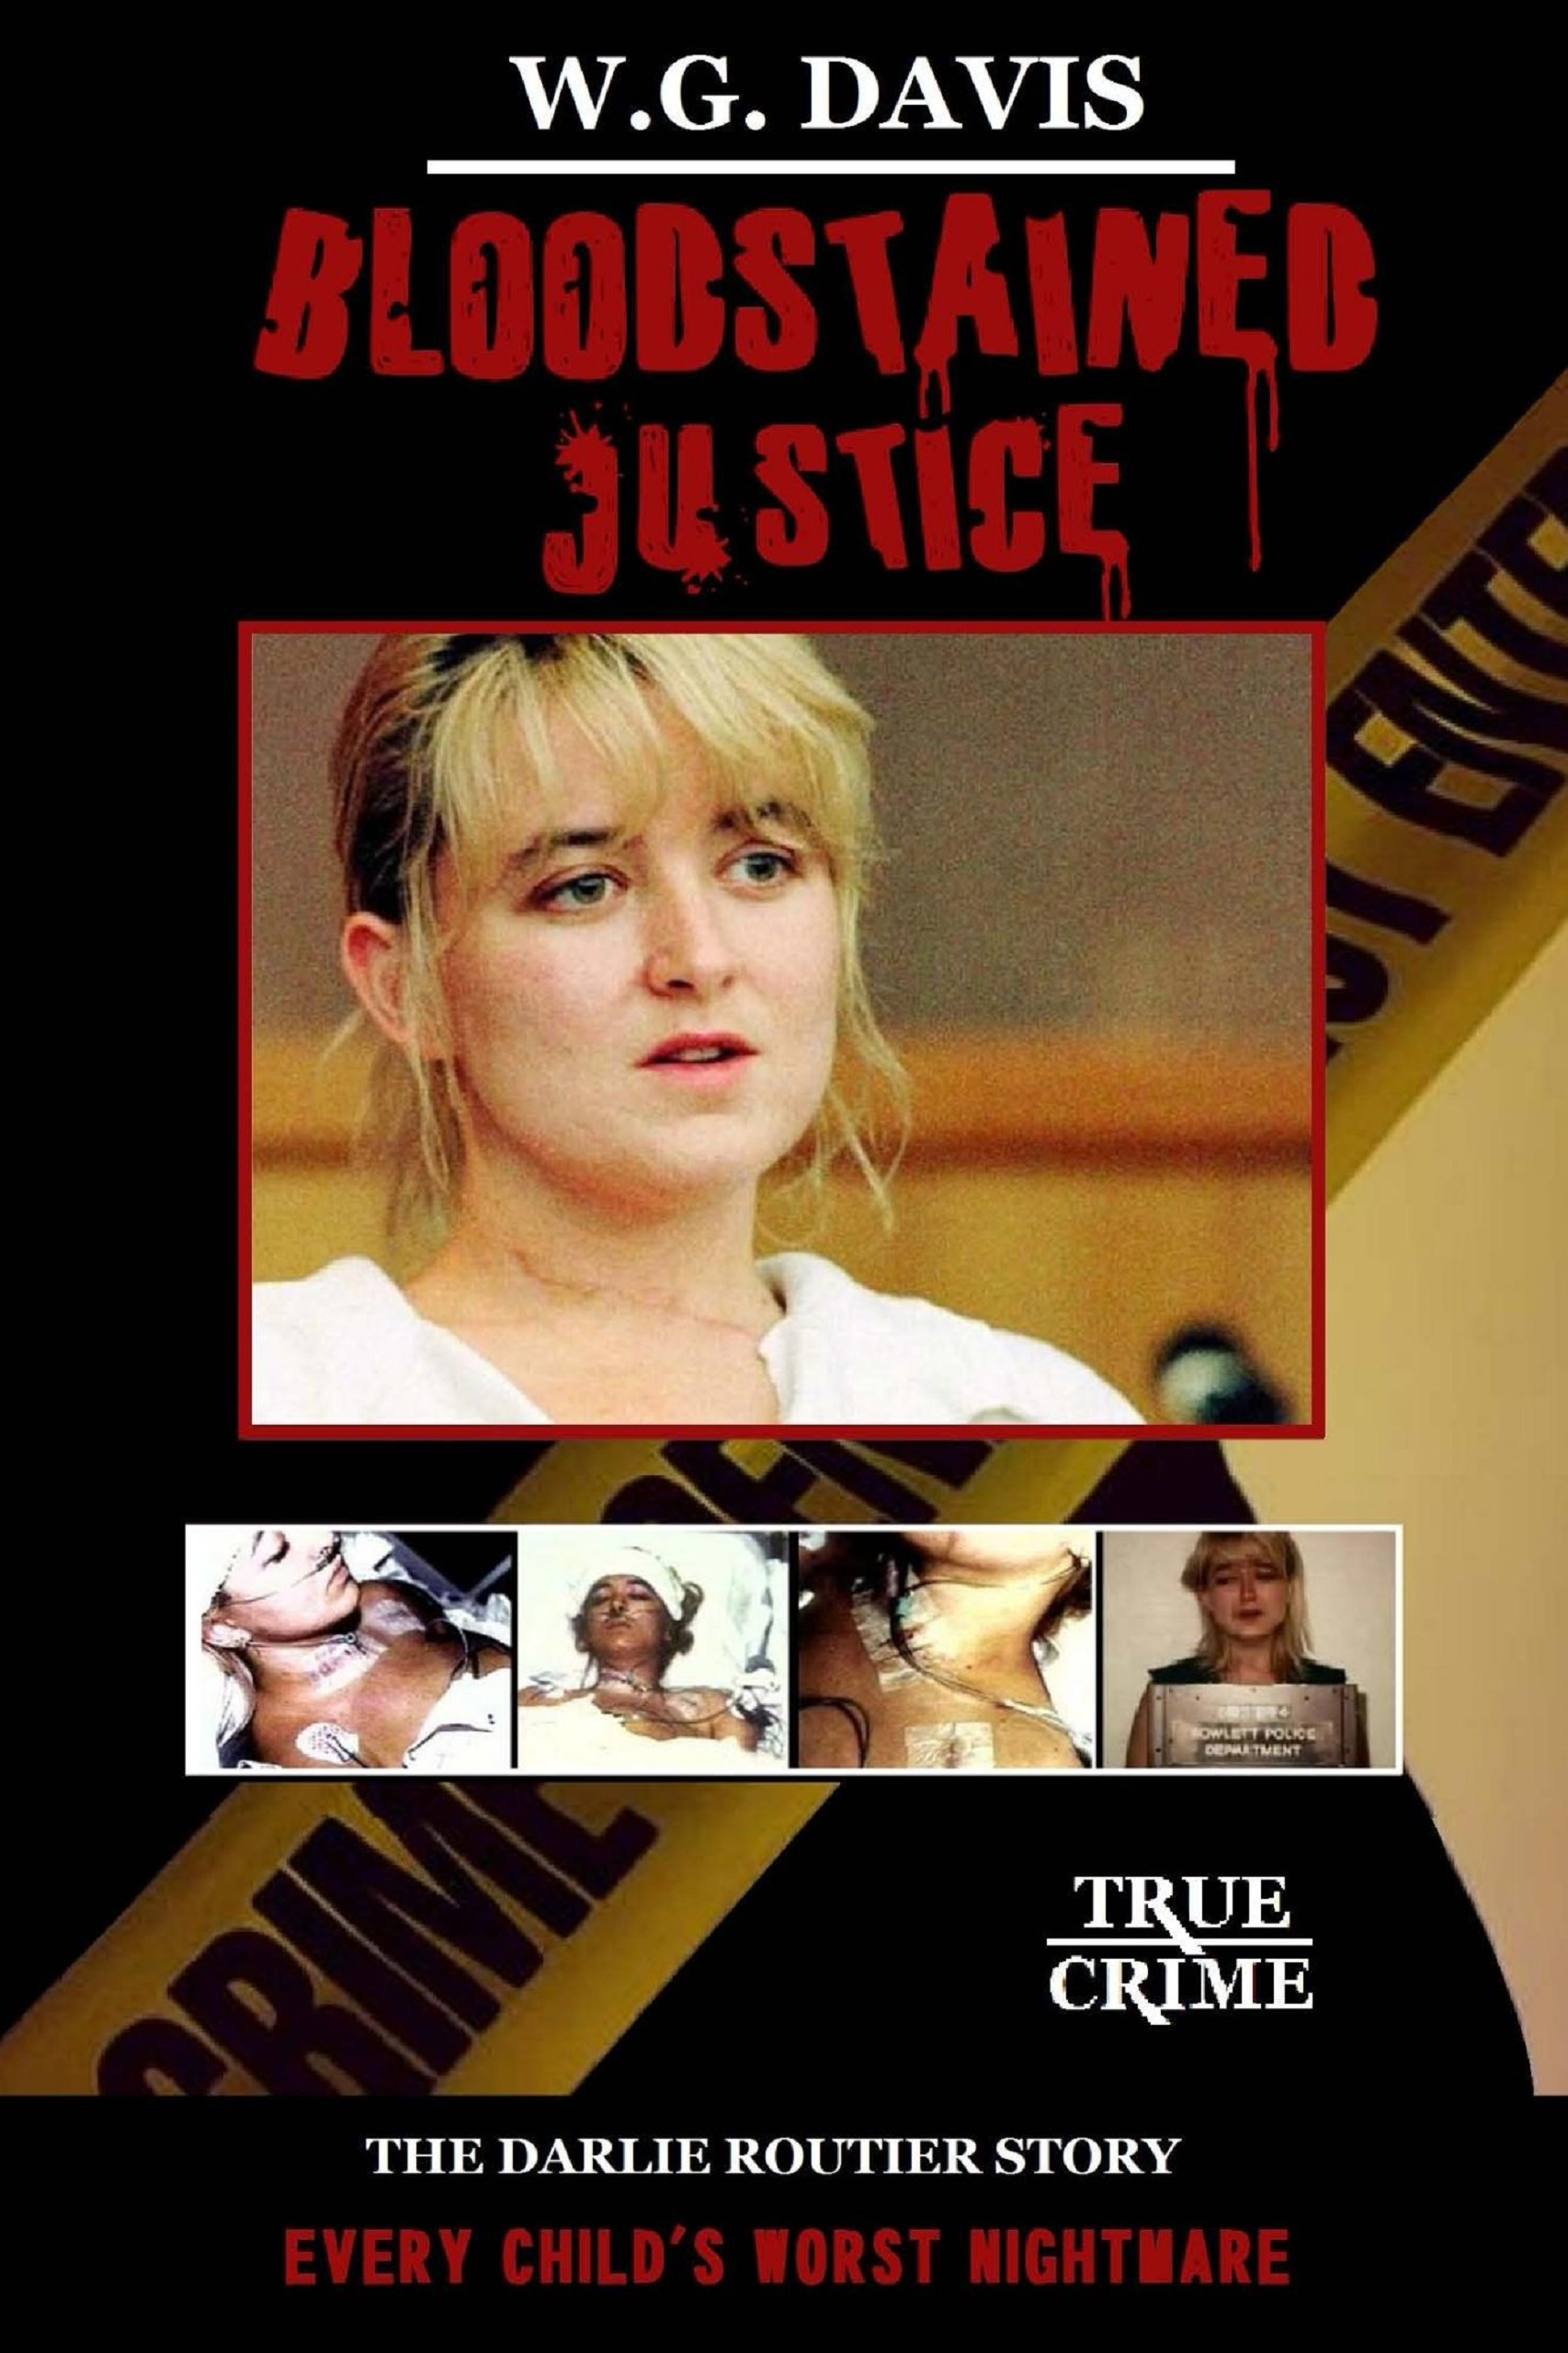 Smashwords Bloodstained Justice The Darlie Routier Story A Book